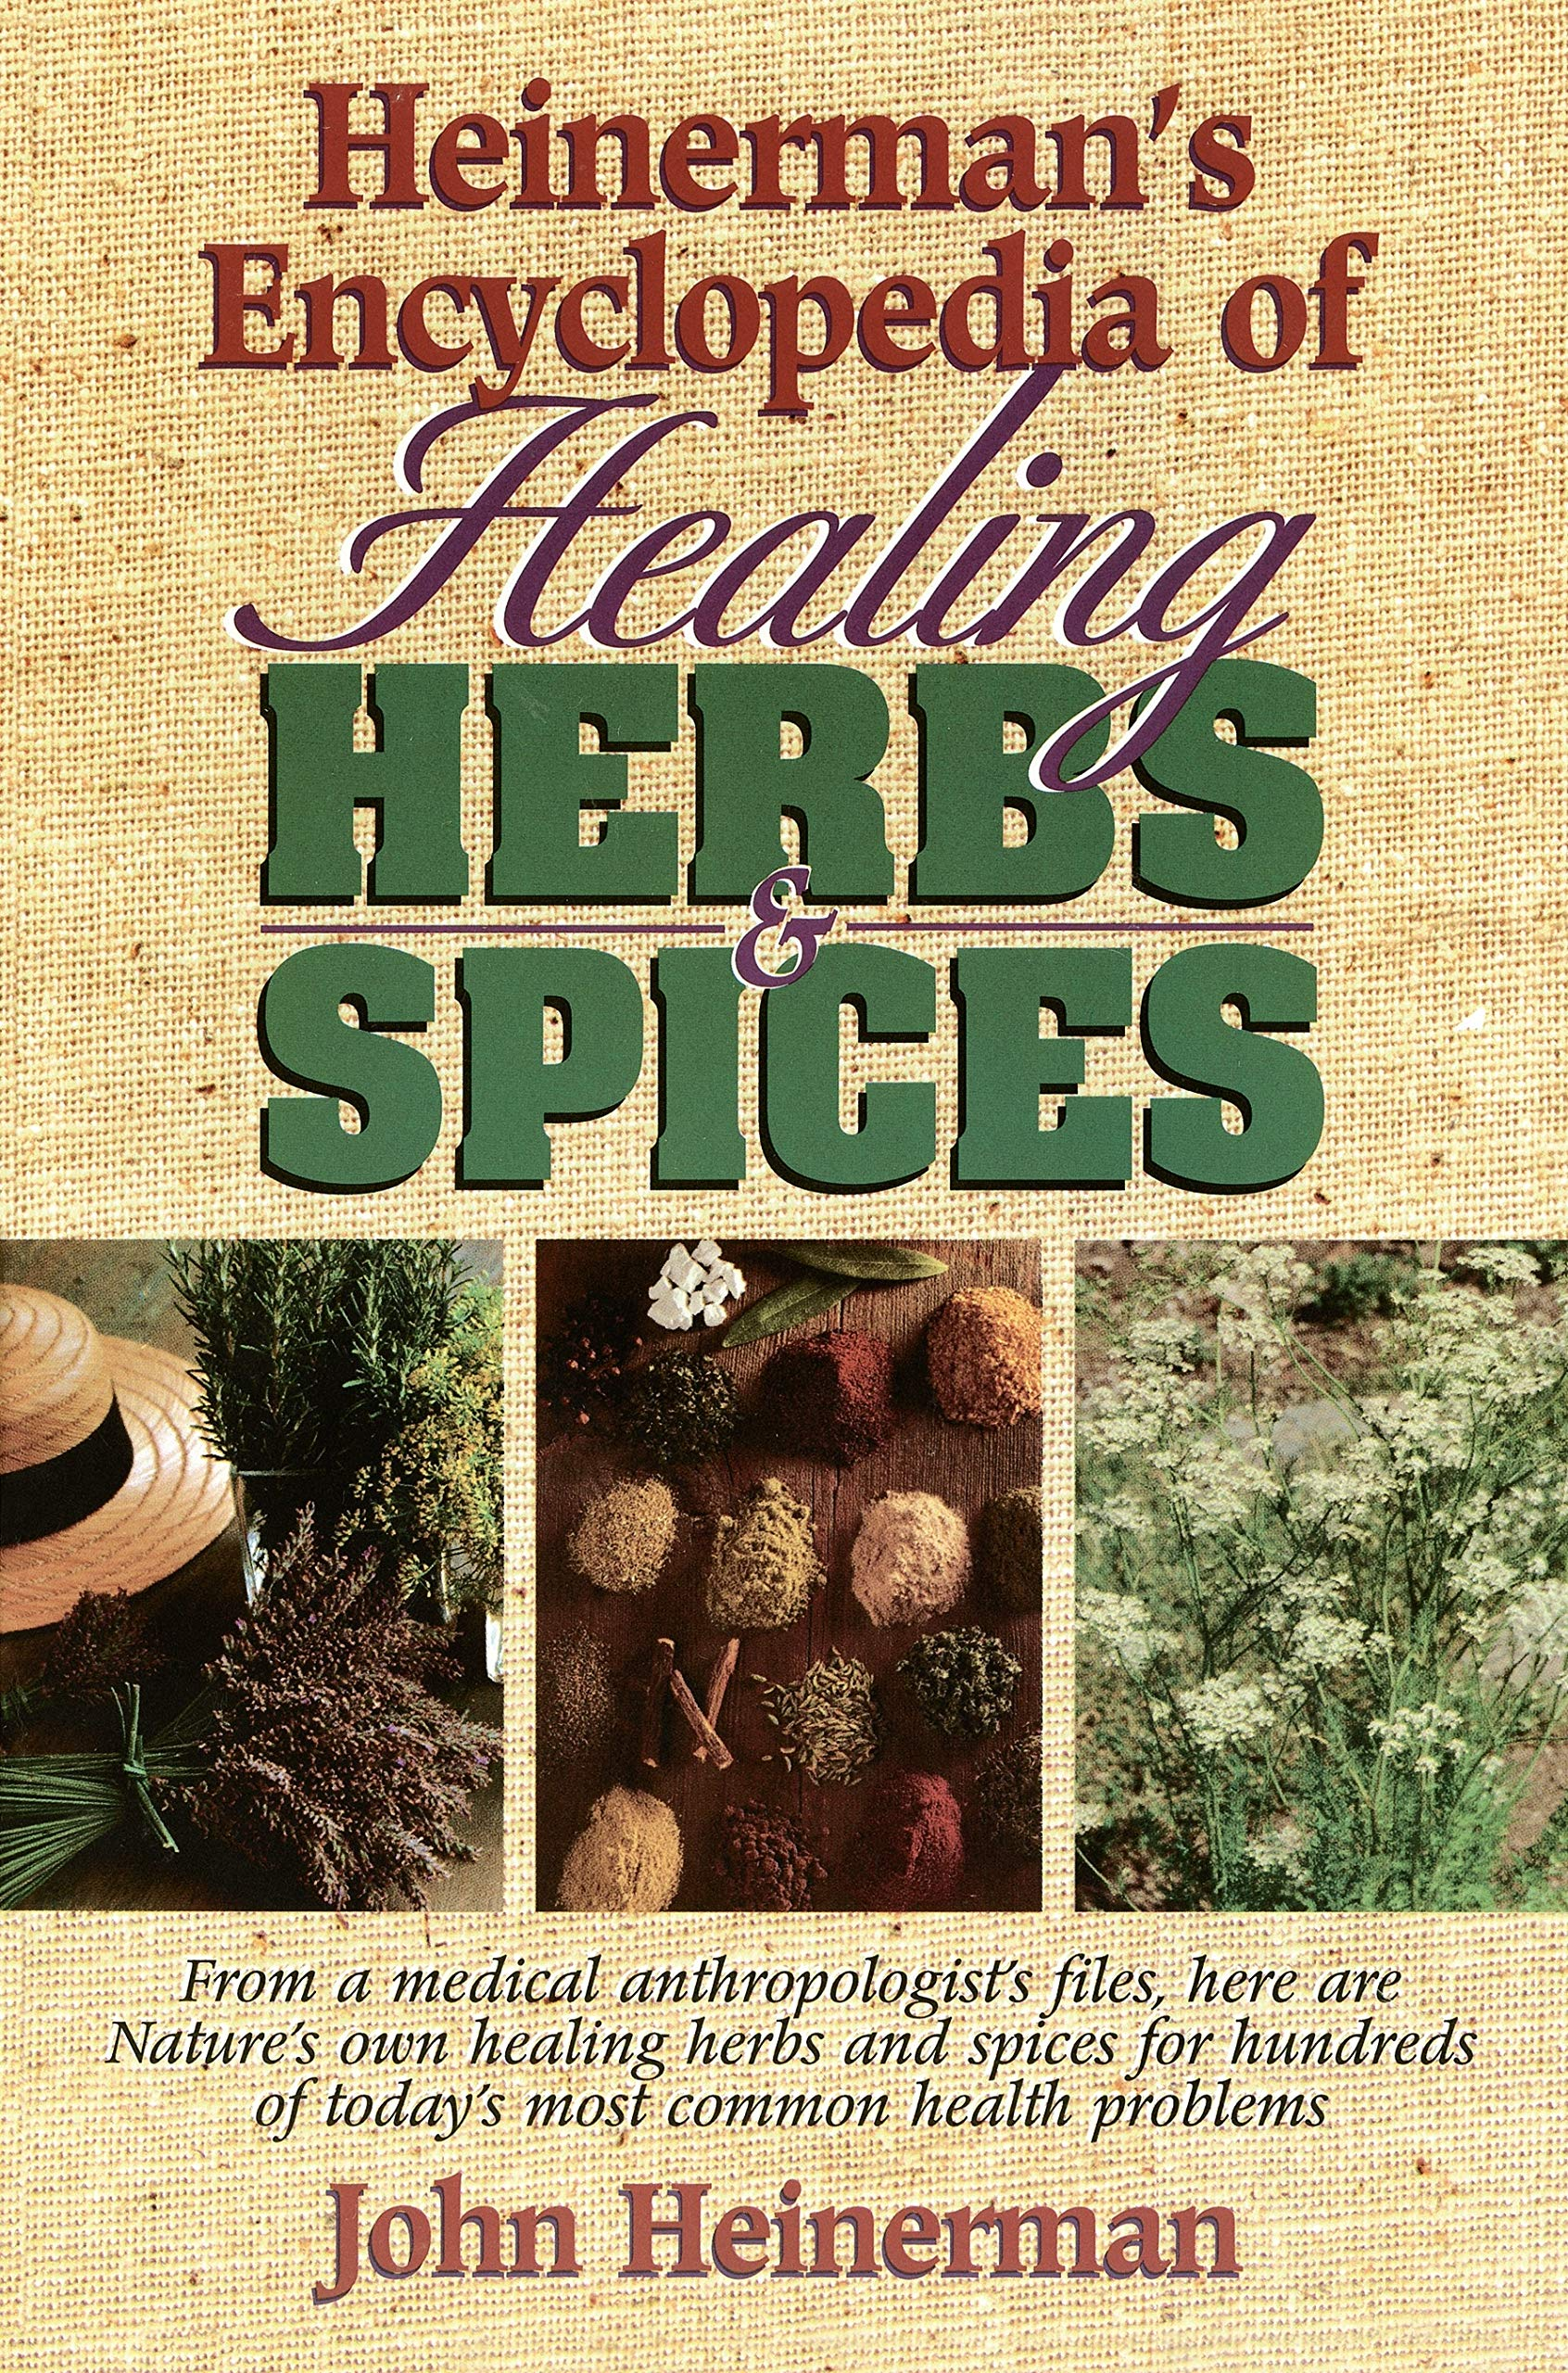 Book Review: Heinerman's Encyclopedia of Healing Herbs and Spices